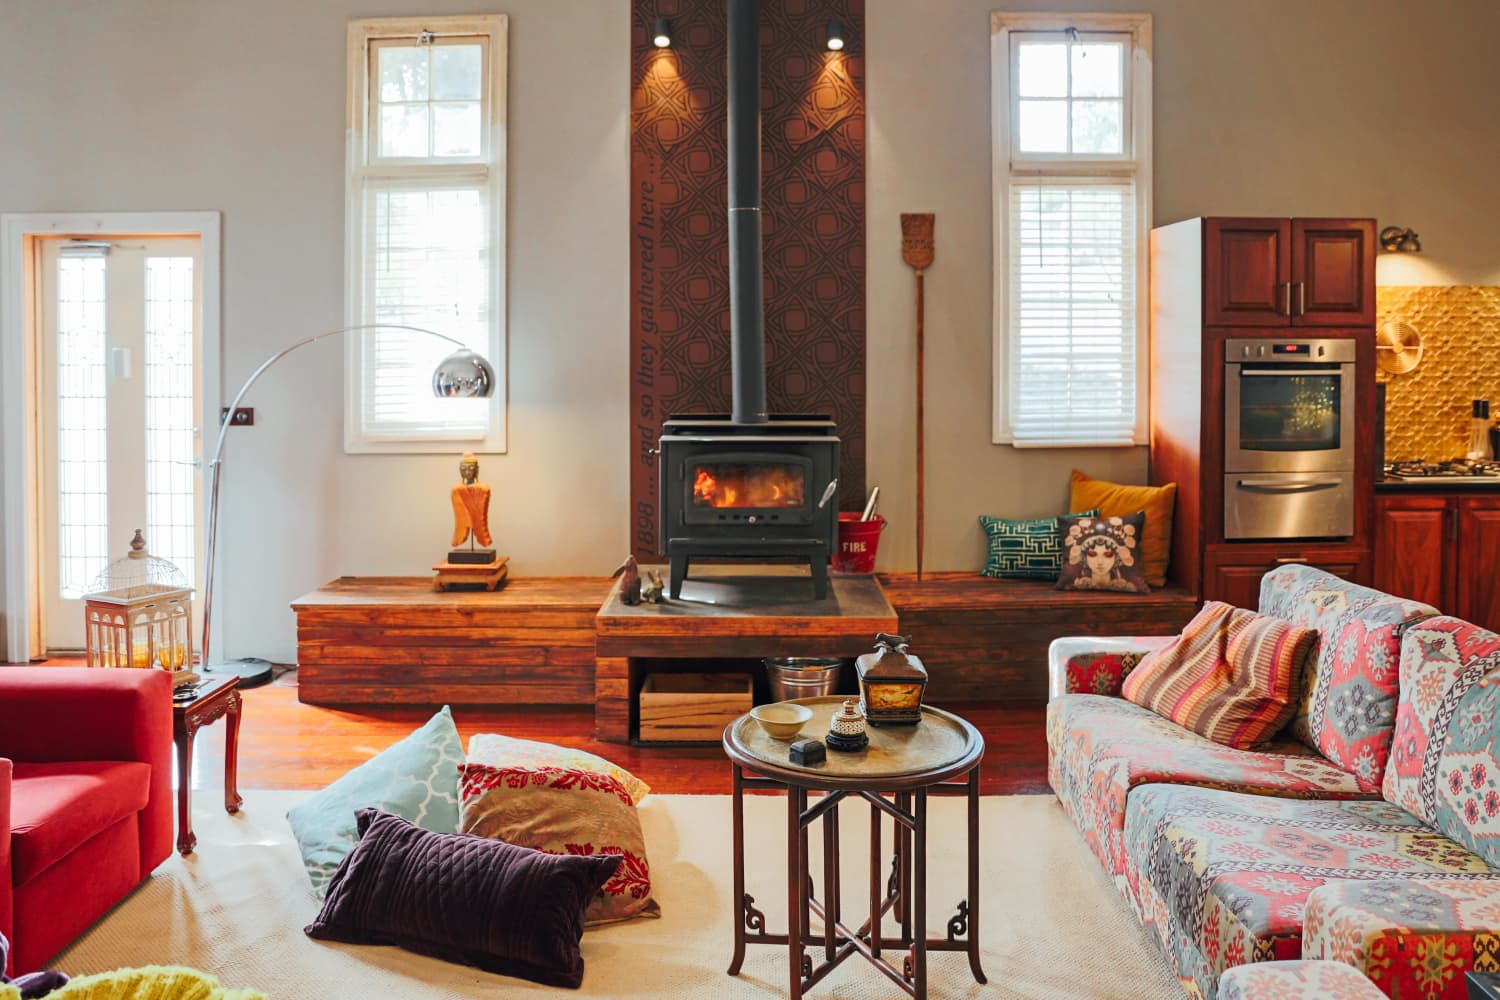 8 Simple, Free 10-Minute Refreshes That Will Make You Fall In Love With Your Home Again